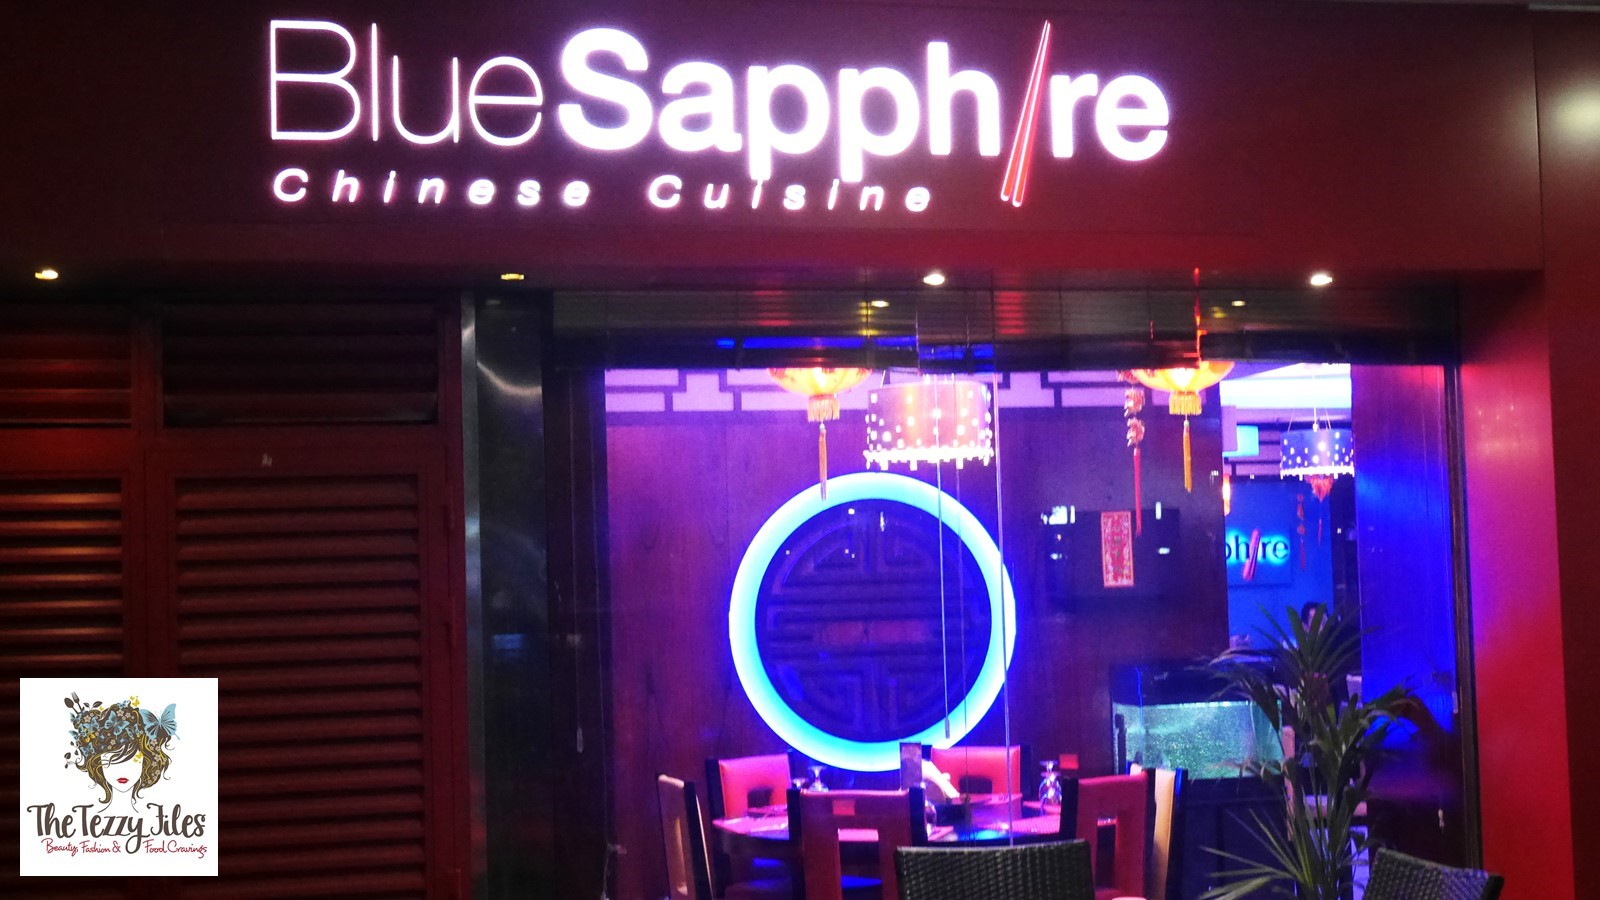 Blue Sapphire Indo Chinese restaurant JLT Dubai review by The Tezzy Files UAE Food Blogger (1)